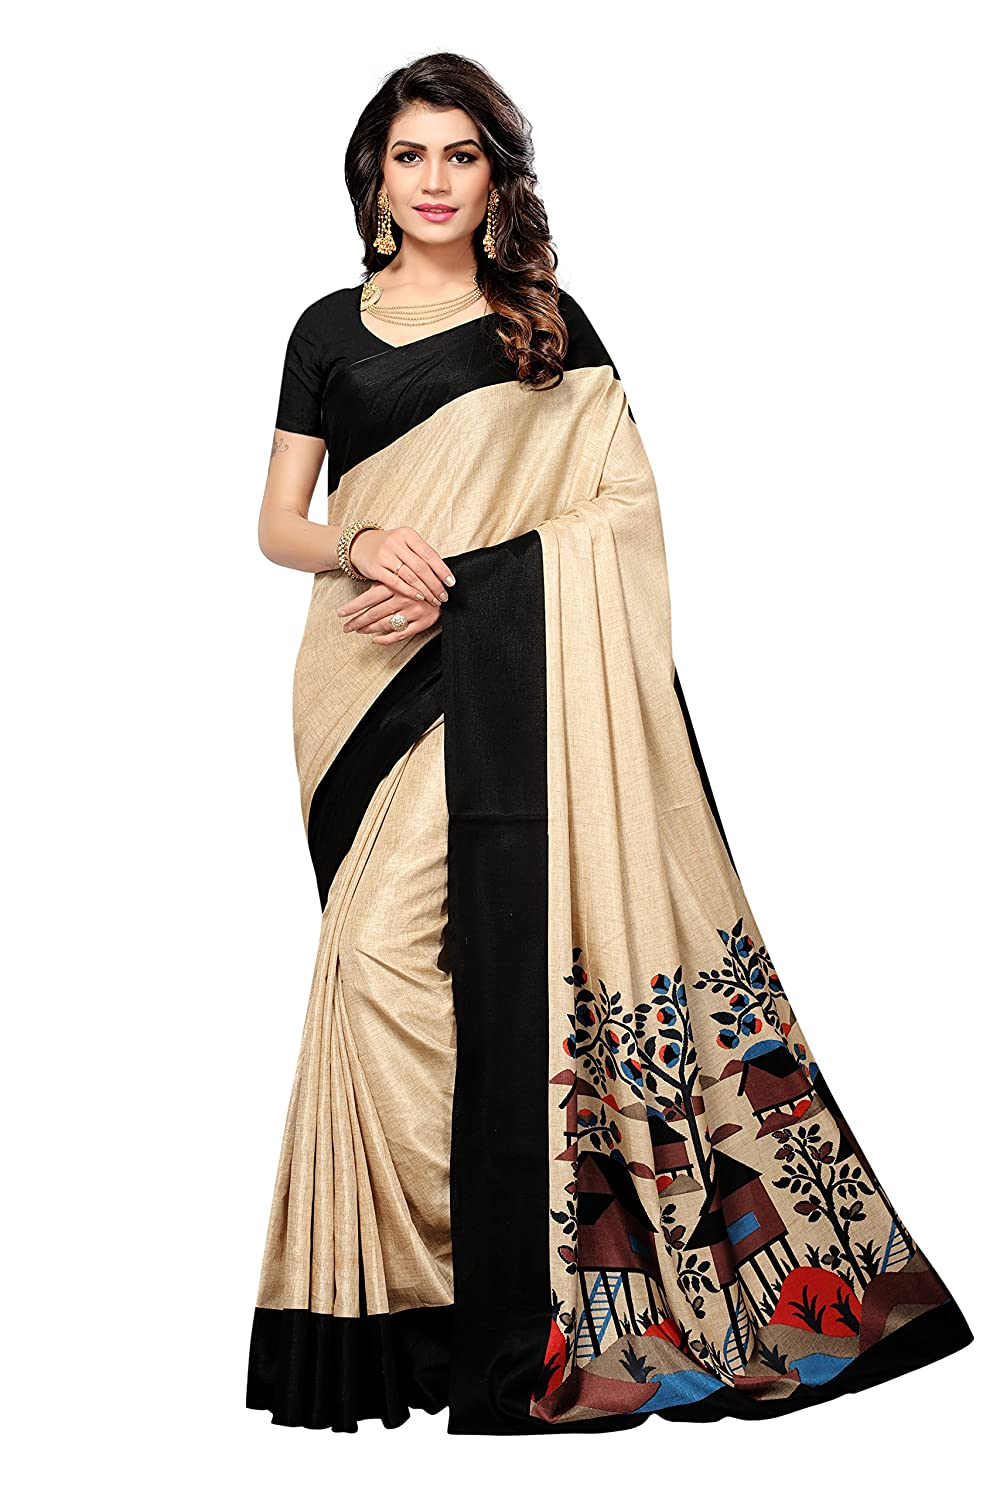 Shonaya Womens Black & Beige Colour Manipuri Silk Printed Saree RTMNP-1007